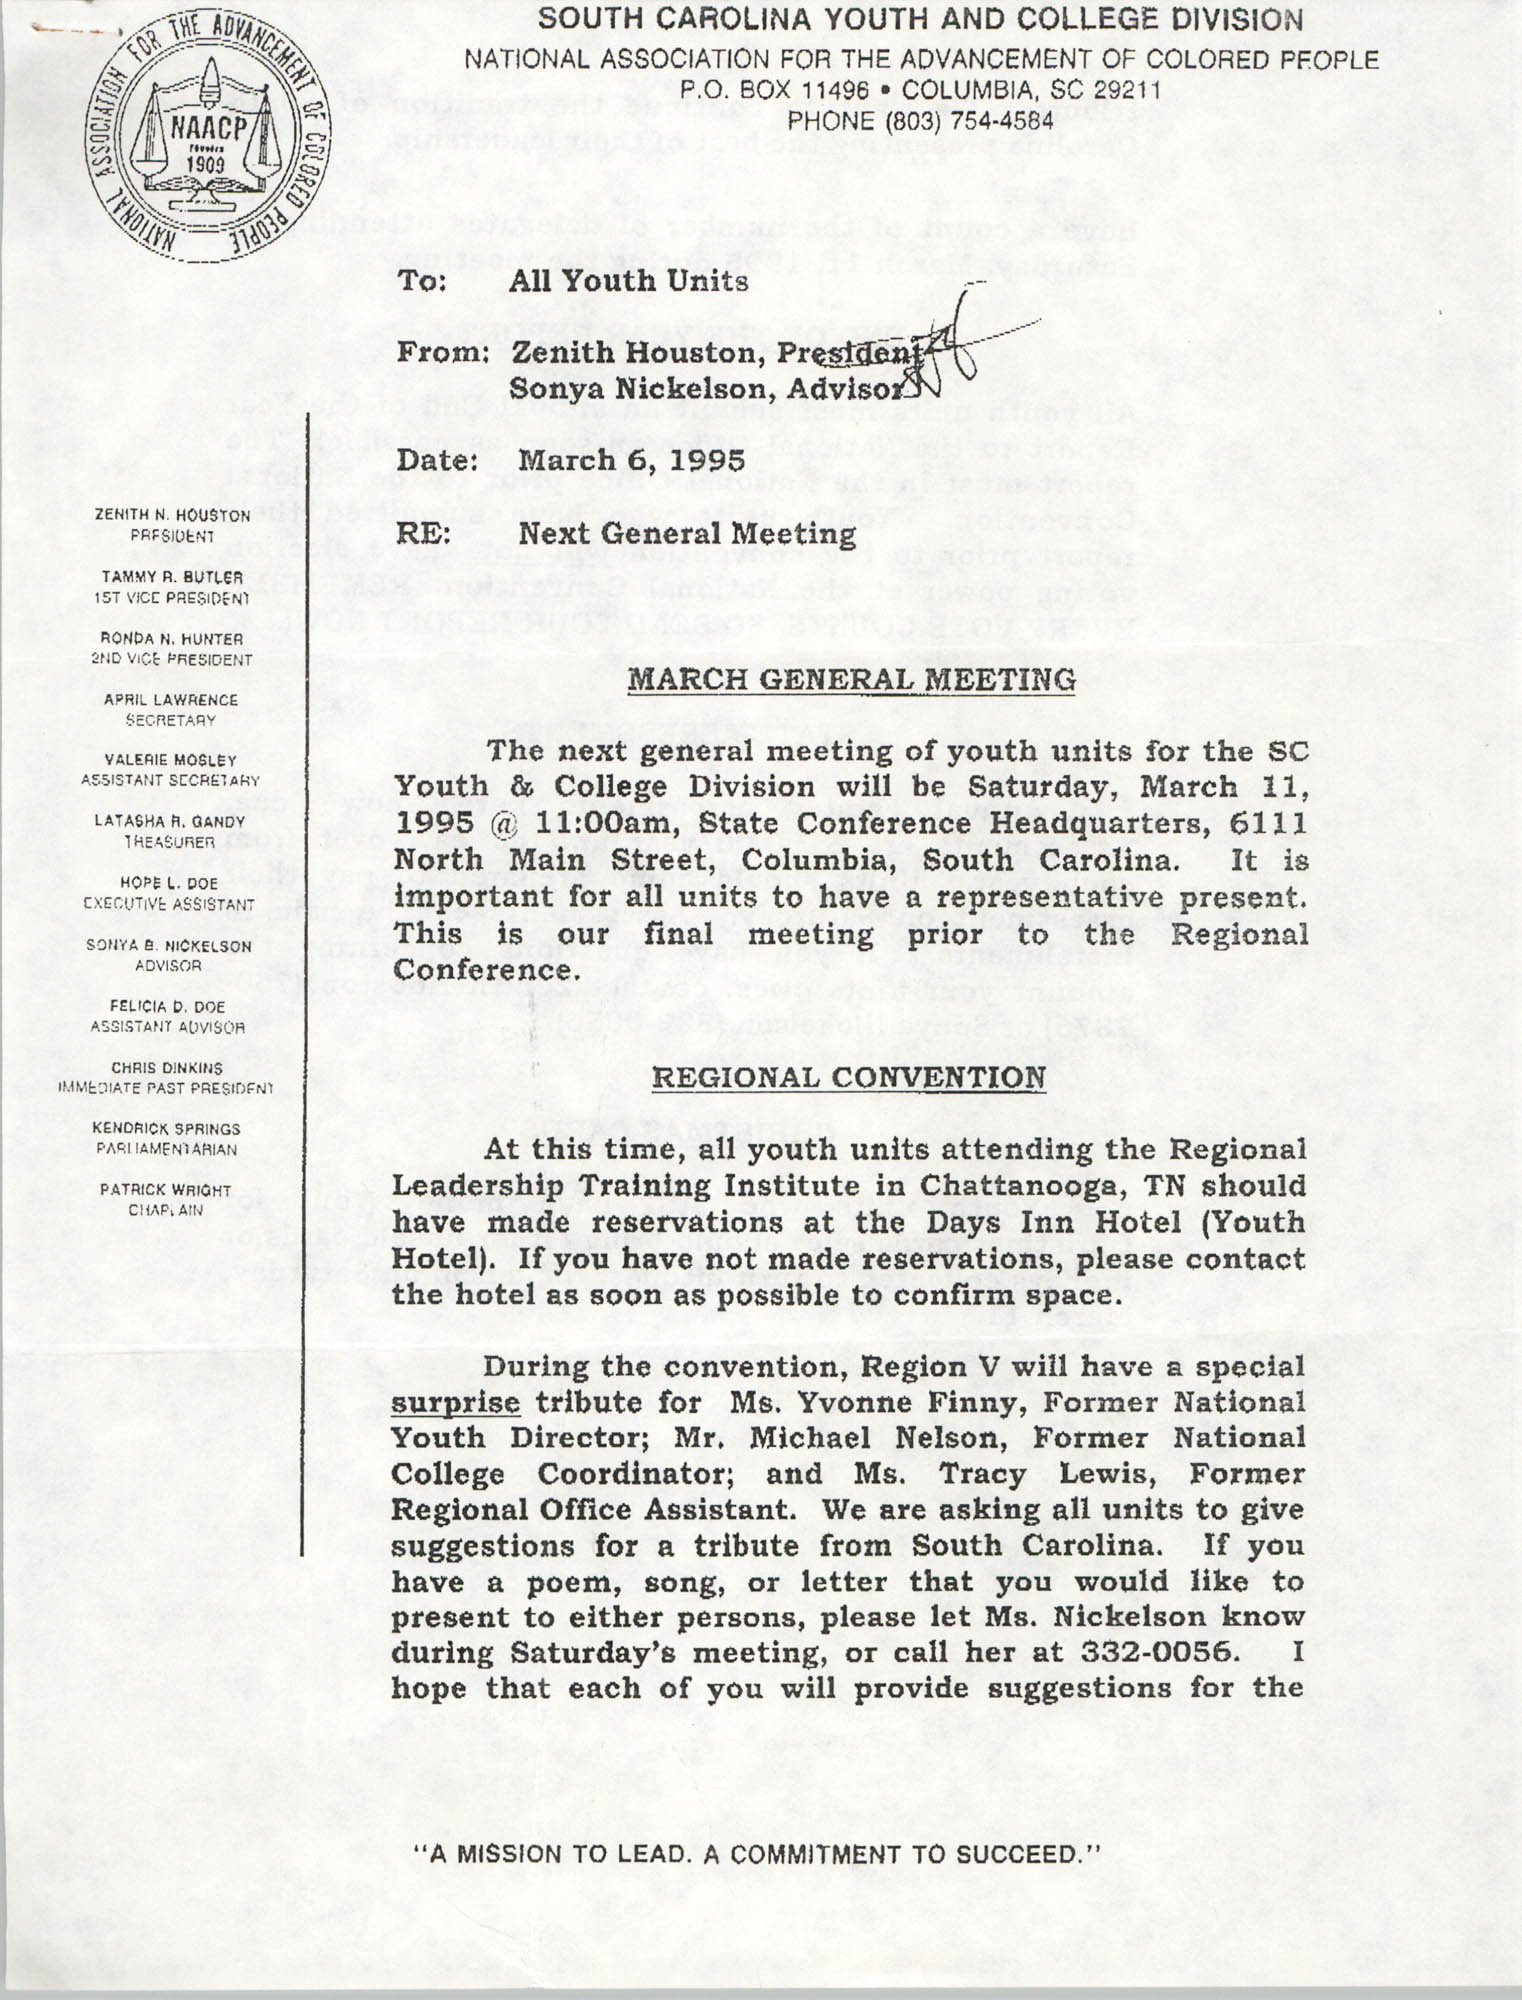 Memorandum, Zenith Houston, March 6, 1995